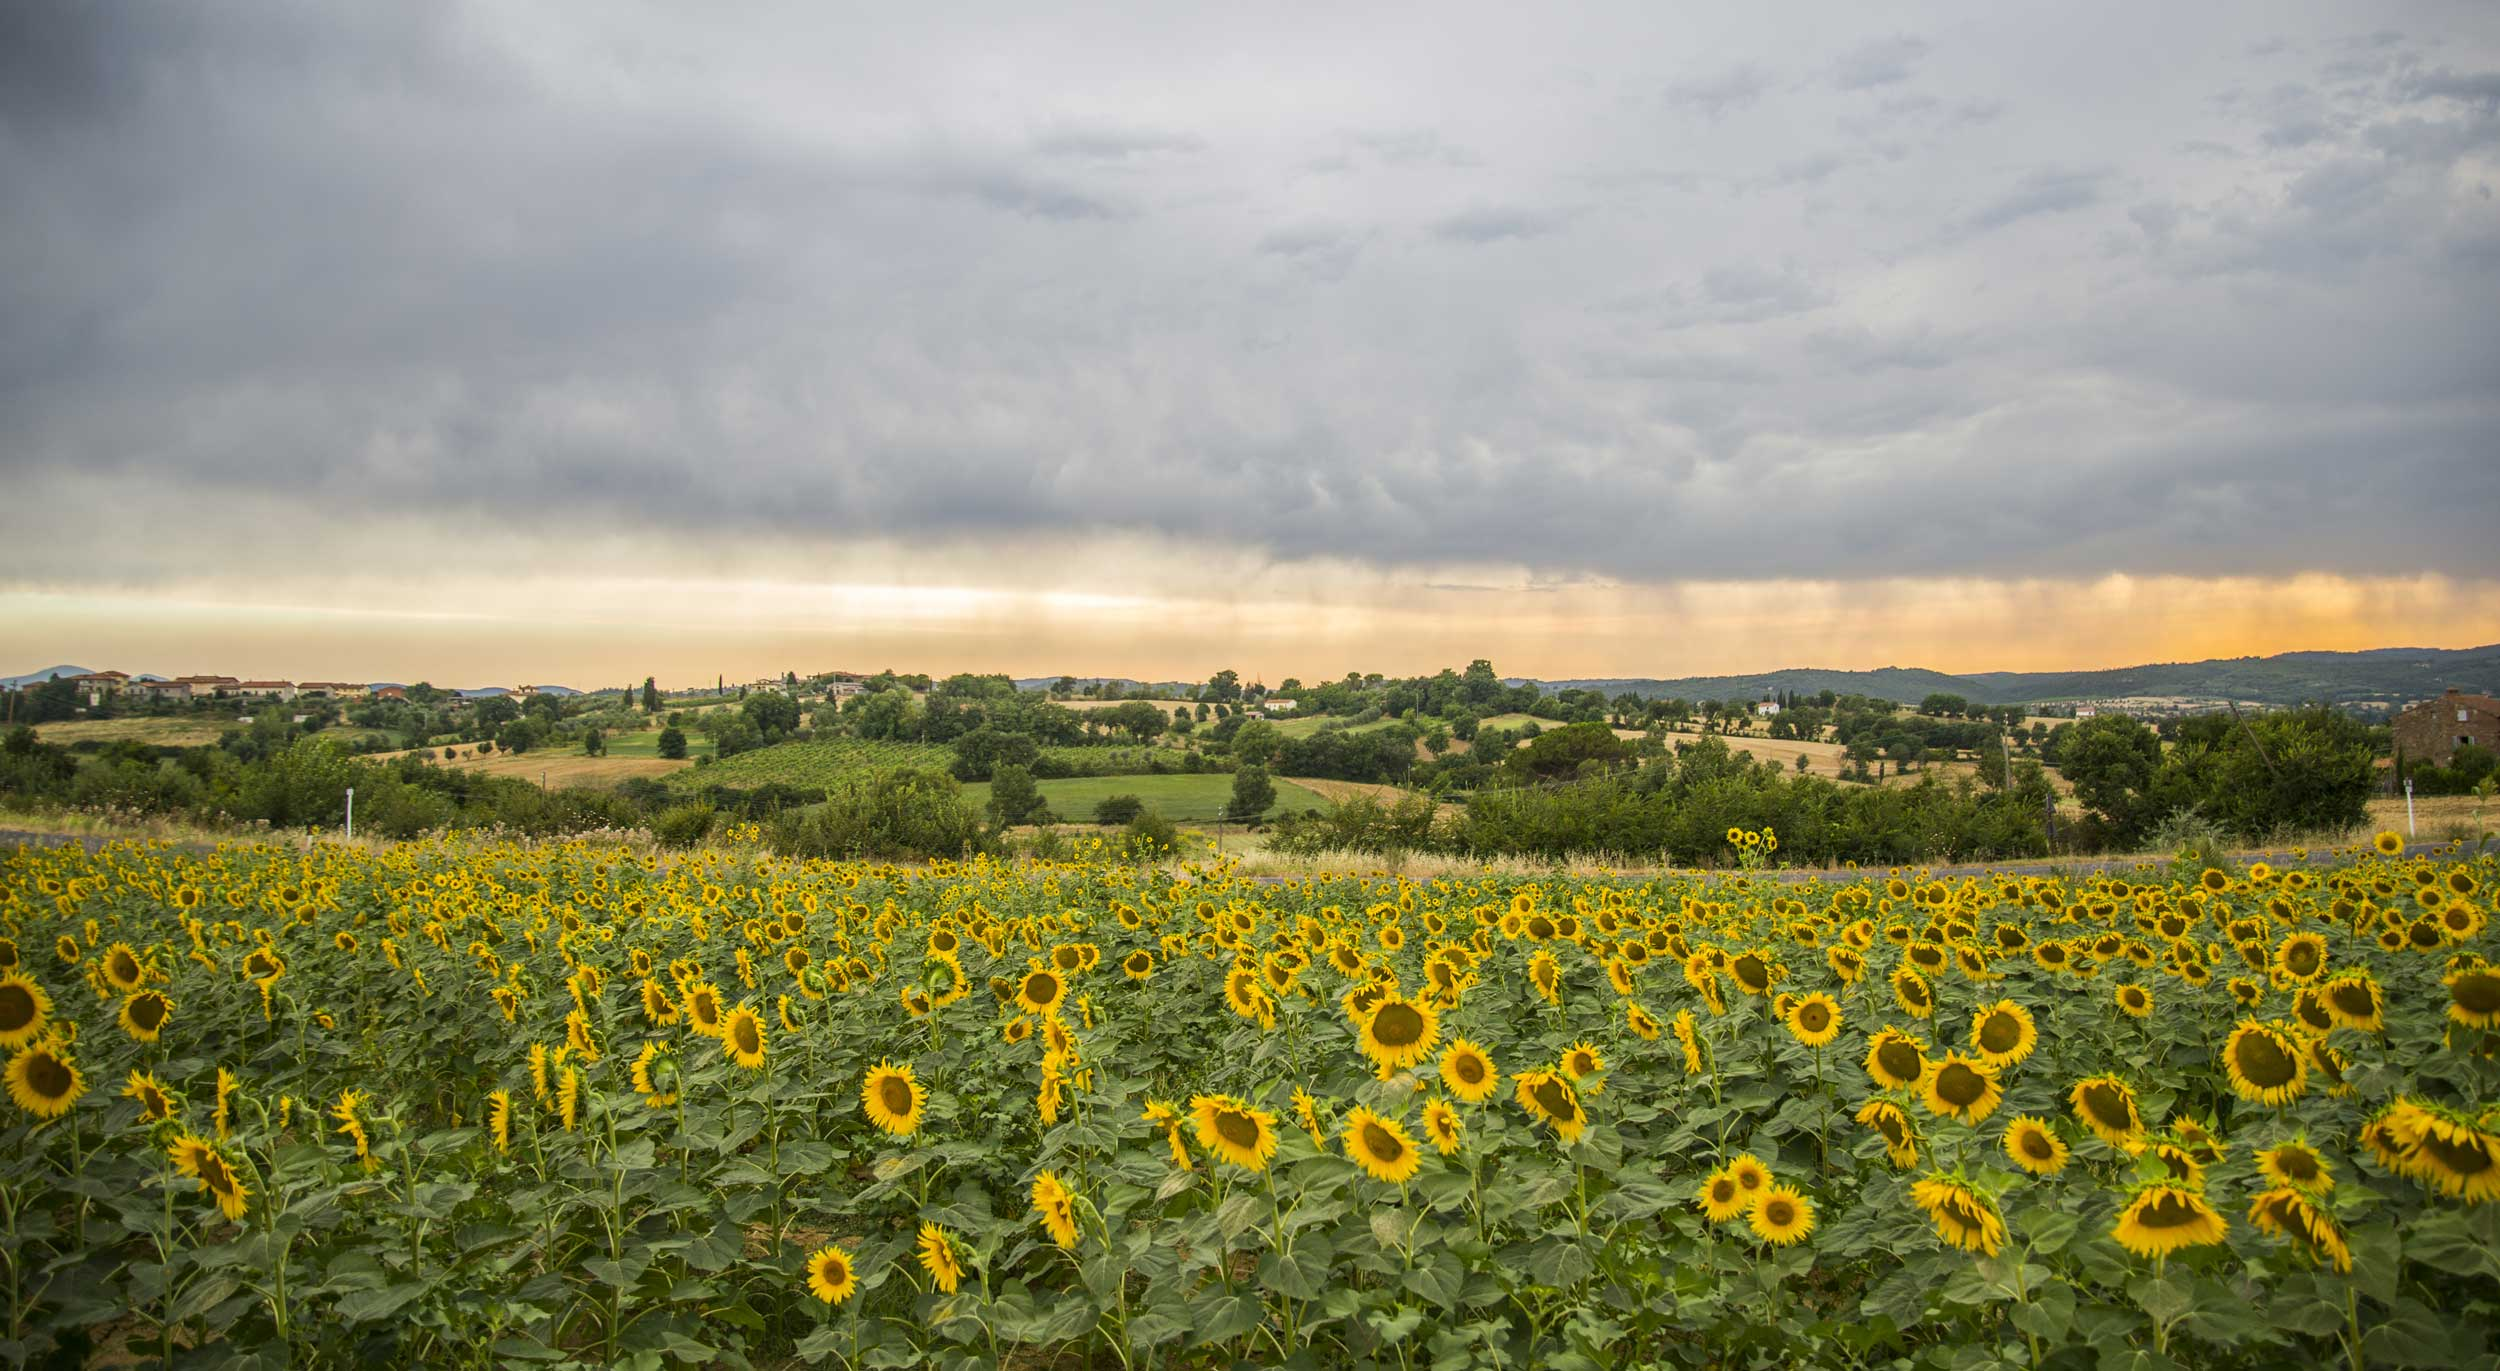 Bank of sunflowers with rolling fields behind it upto the horizon, Italy